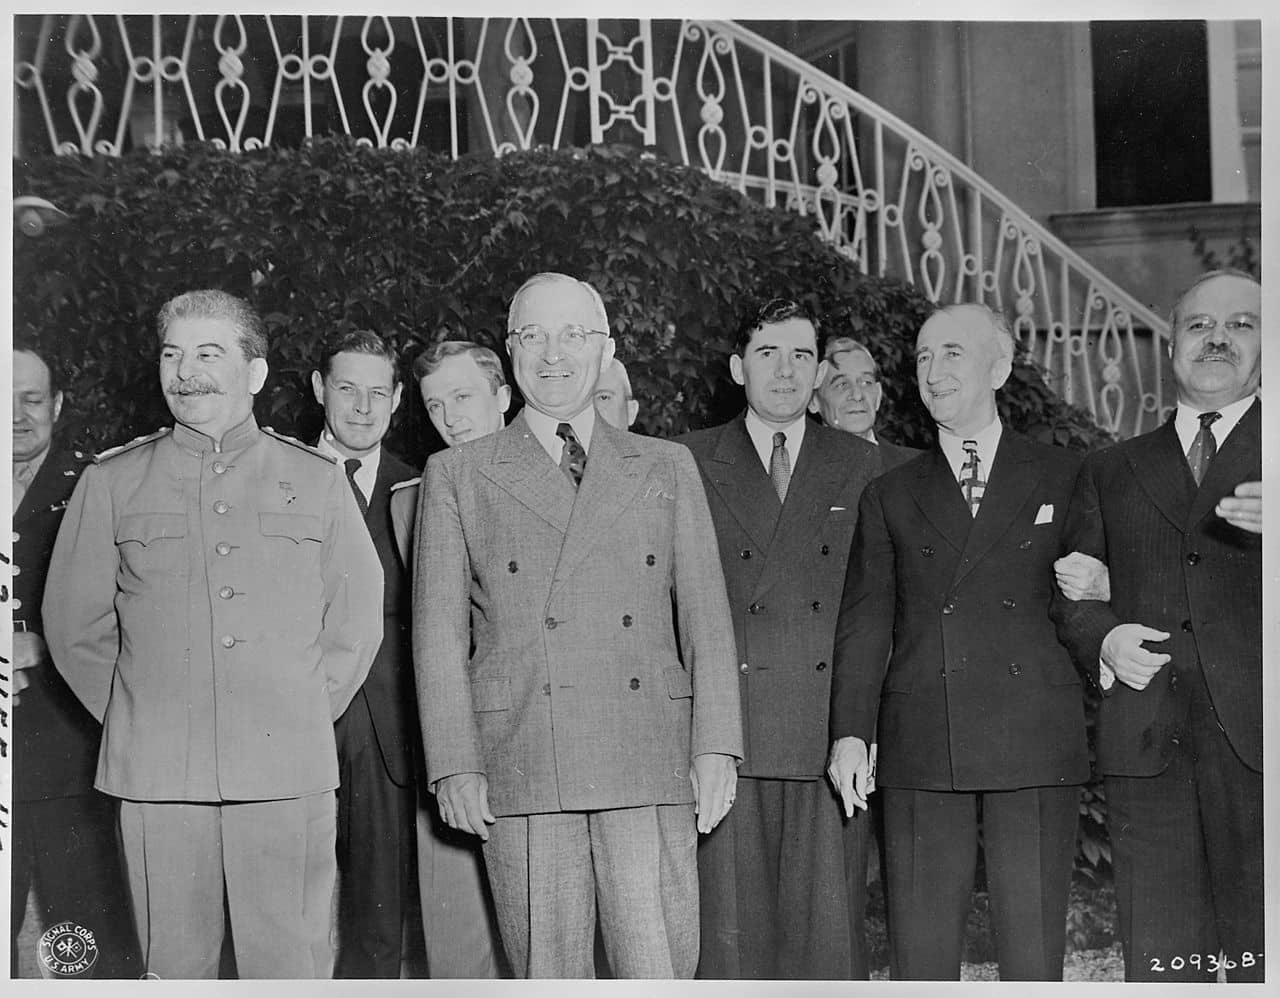 The Potsdam Conference - July 27th 1945 - Despite their professional disagreements, Byrnes and Molotov (right) would become quite close at the Potsdam Conference